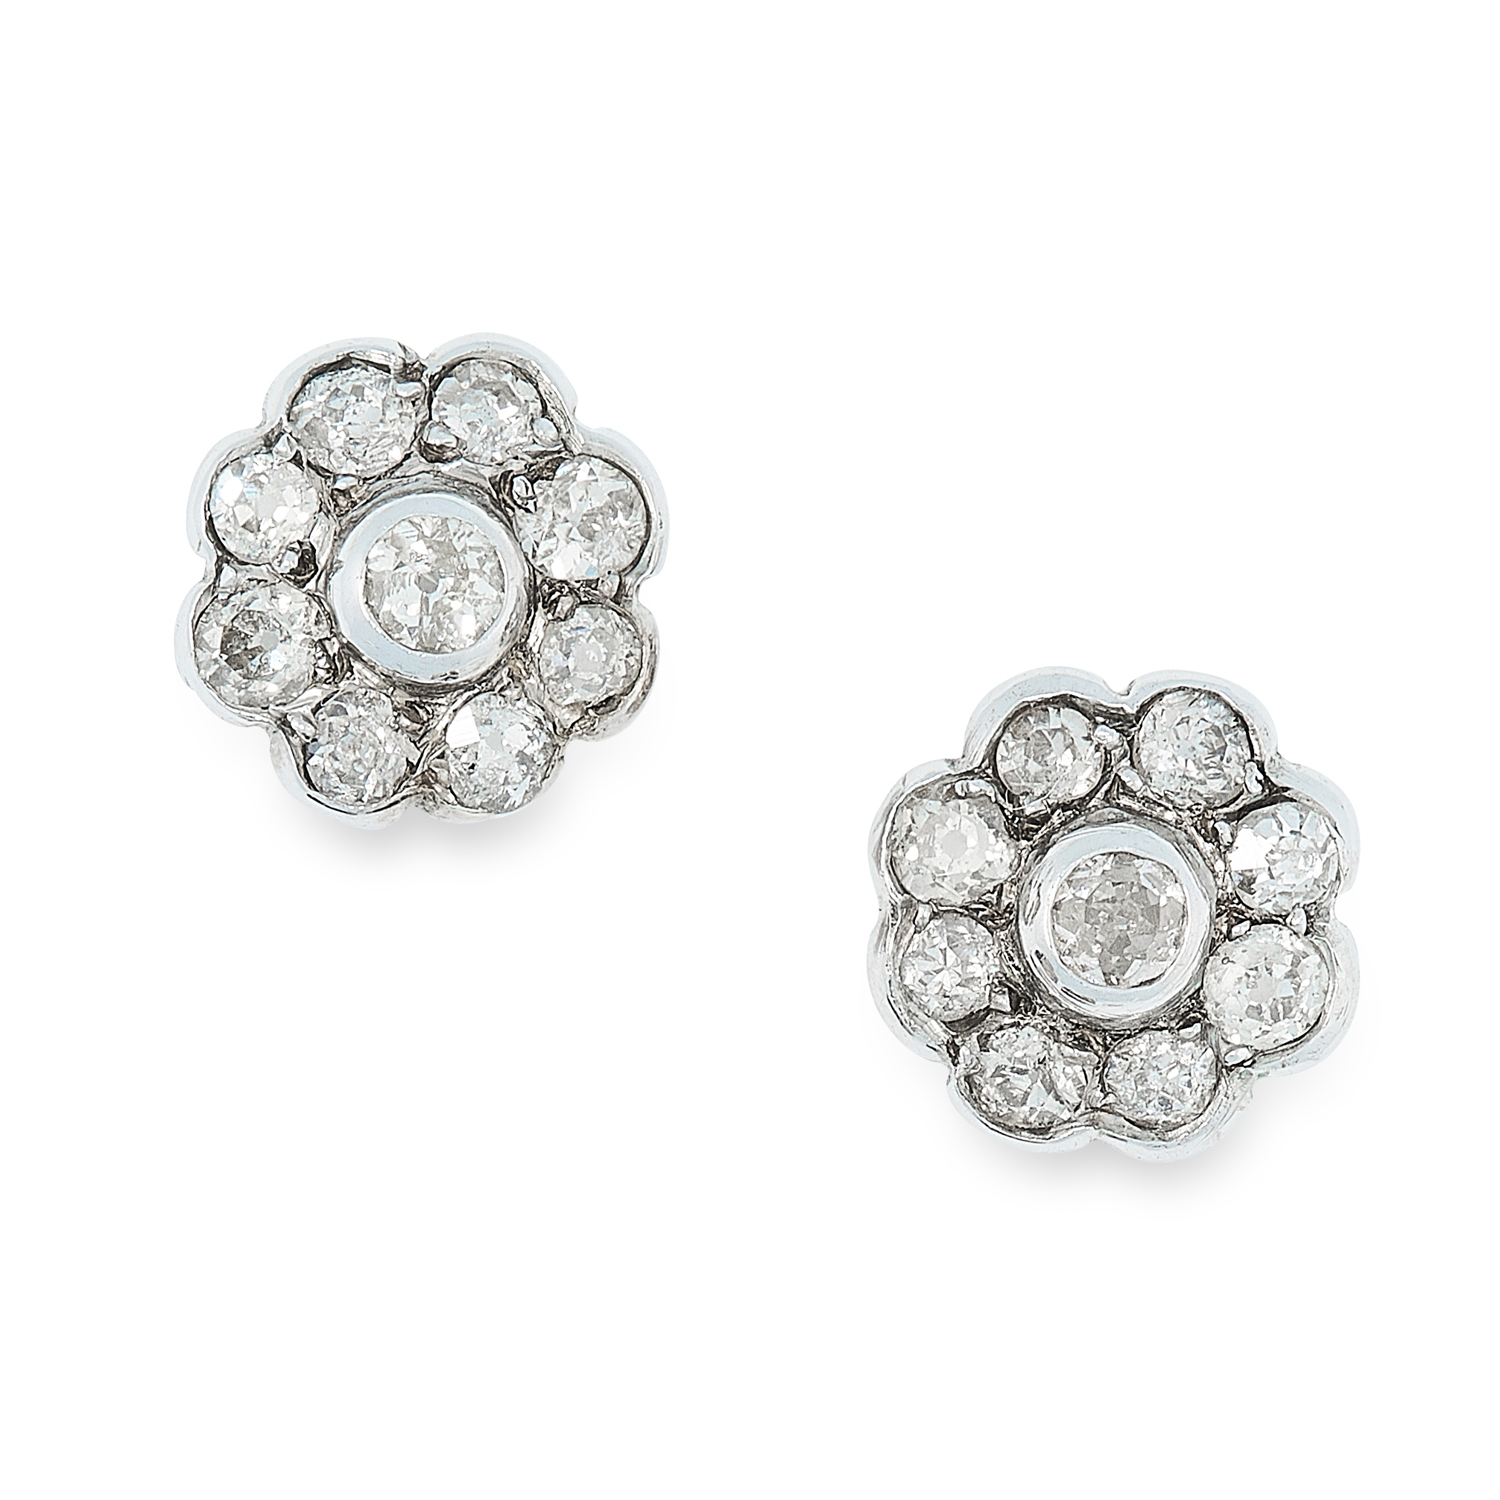 A PAIR OF ANTIQUE DIAMOND CLUSTER EARRINGS in white gold, set with clusters of old round cut